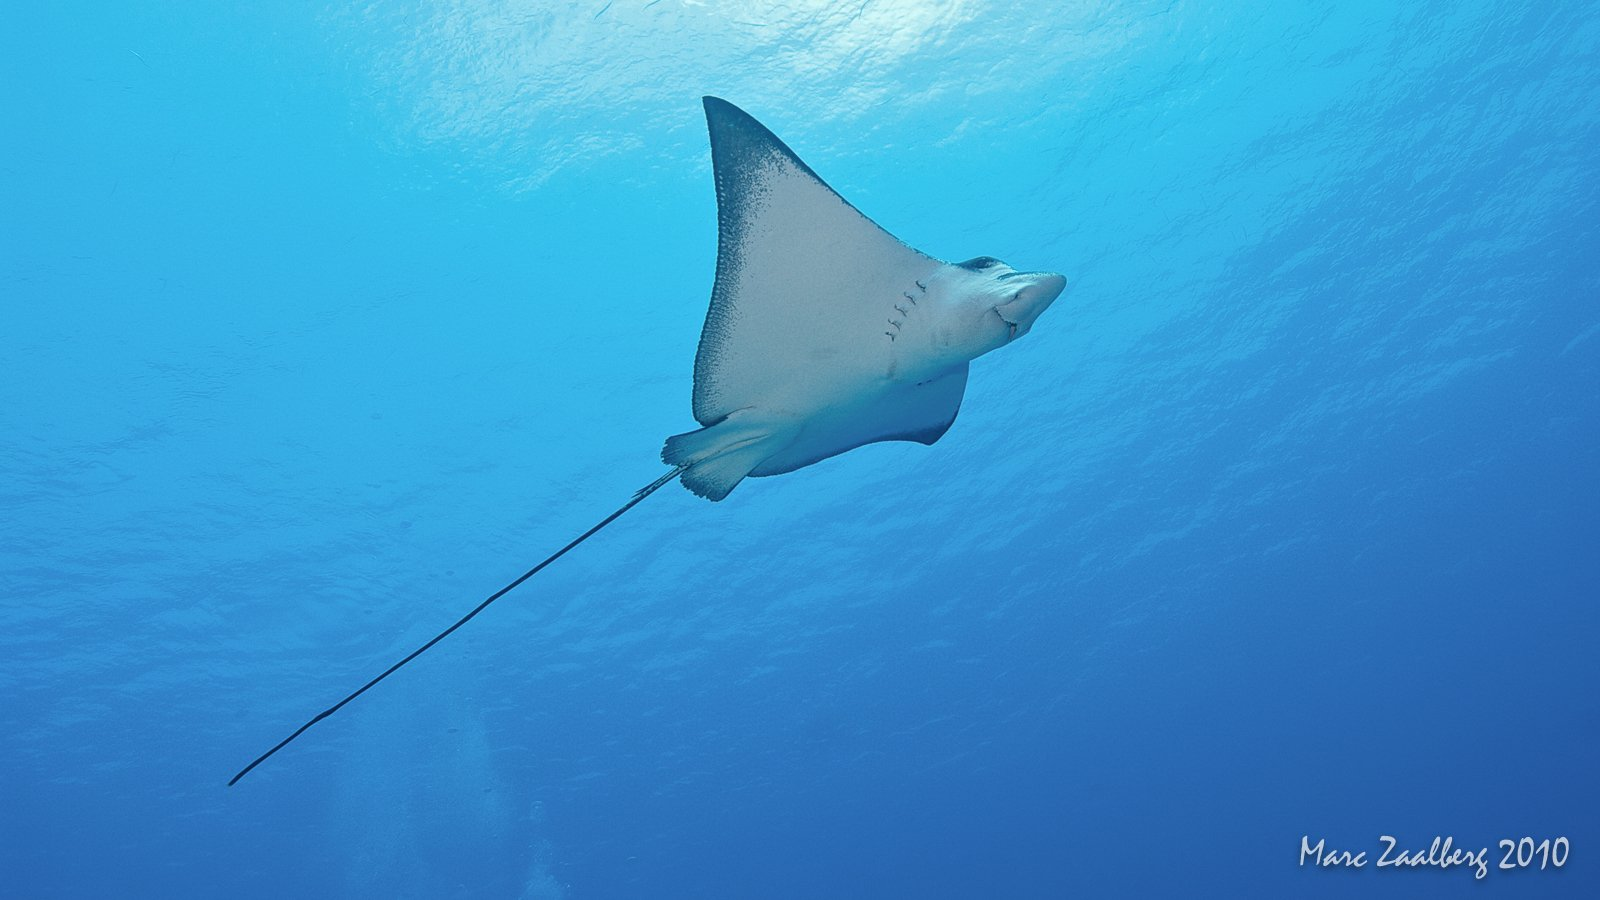 Diving with eagle rays